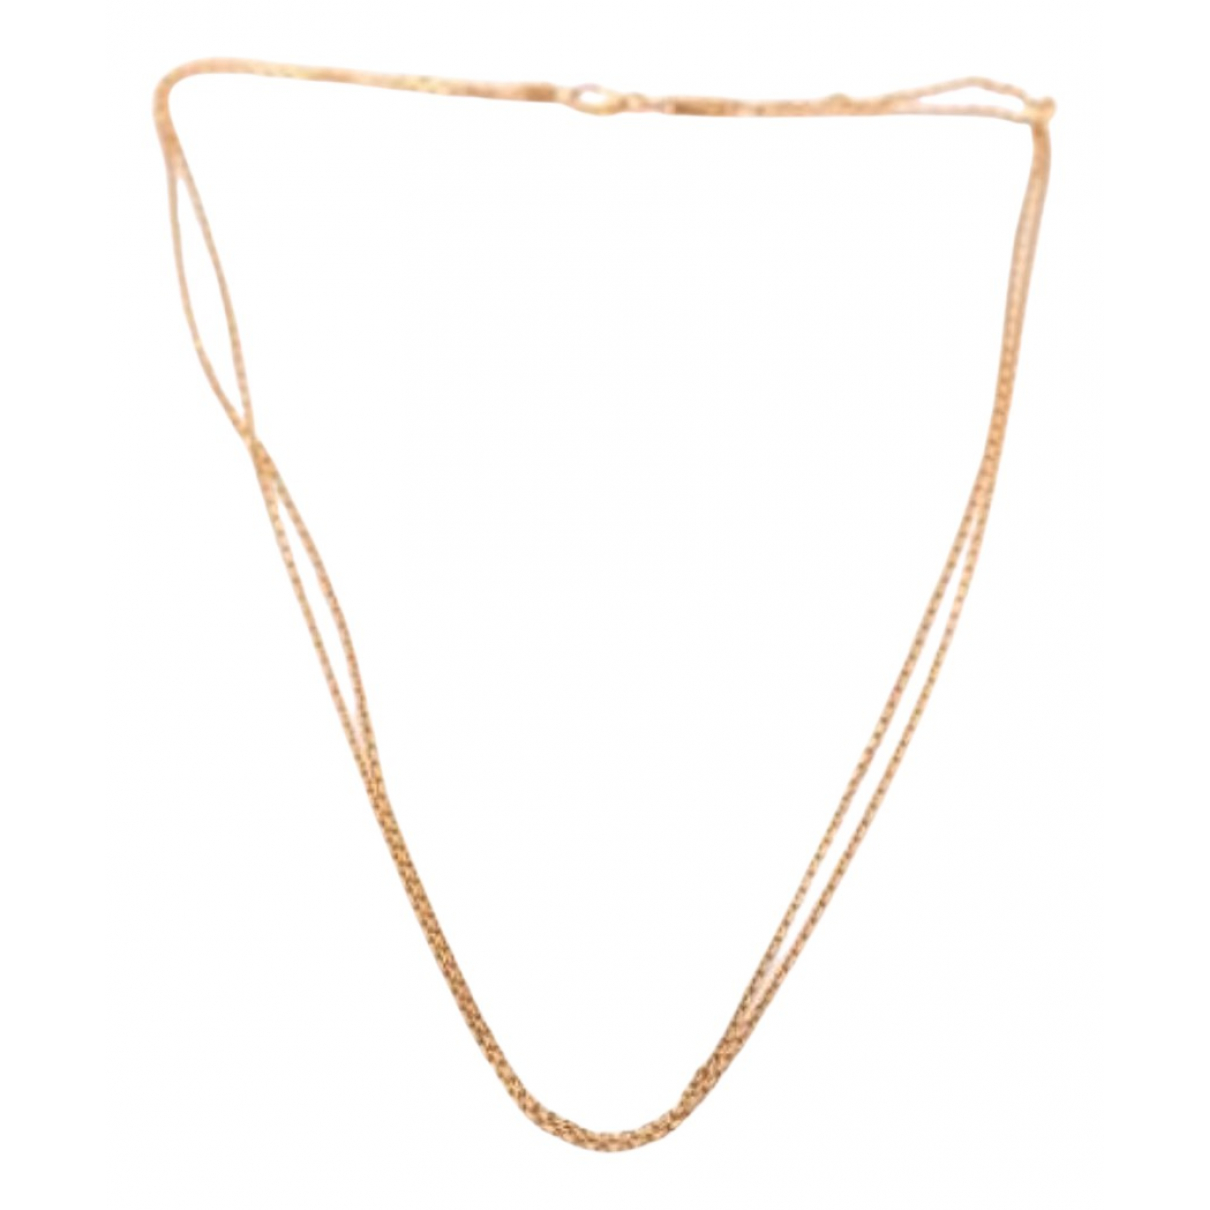 Chopard N Pink Pink gold necklace for Women N